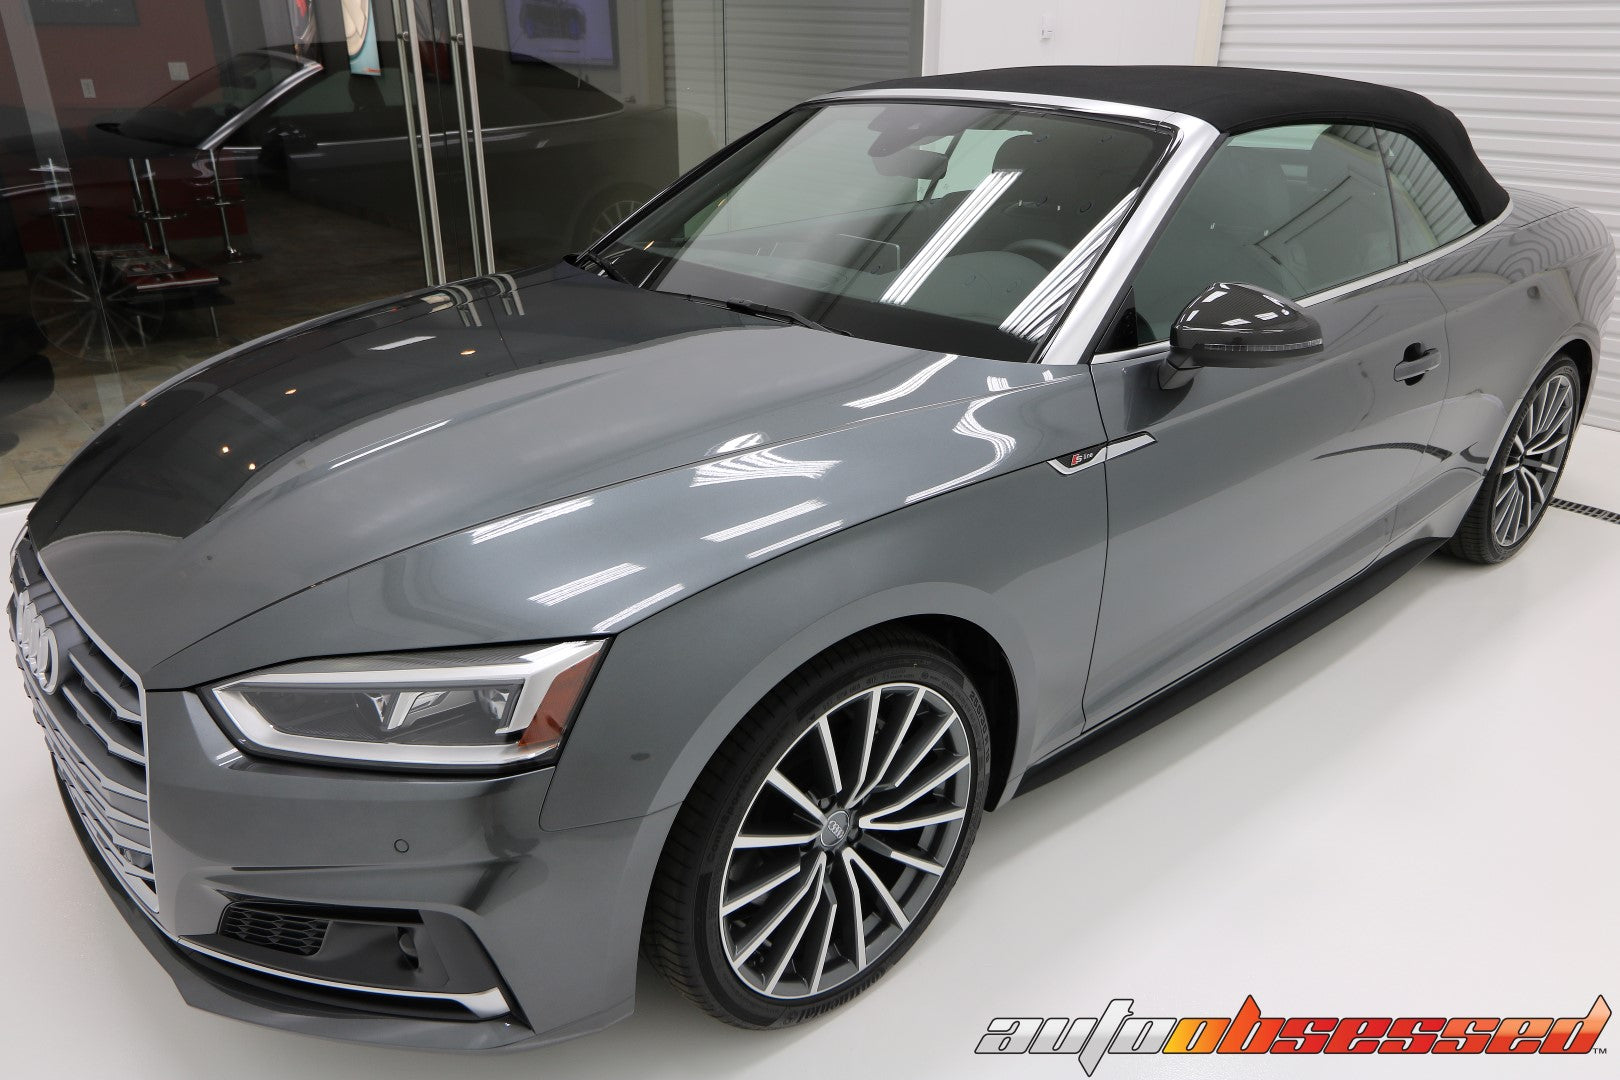 2020 Audi S5 Clean Room Detailing Complete - Auto Obsessed